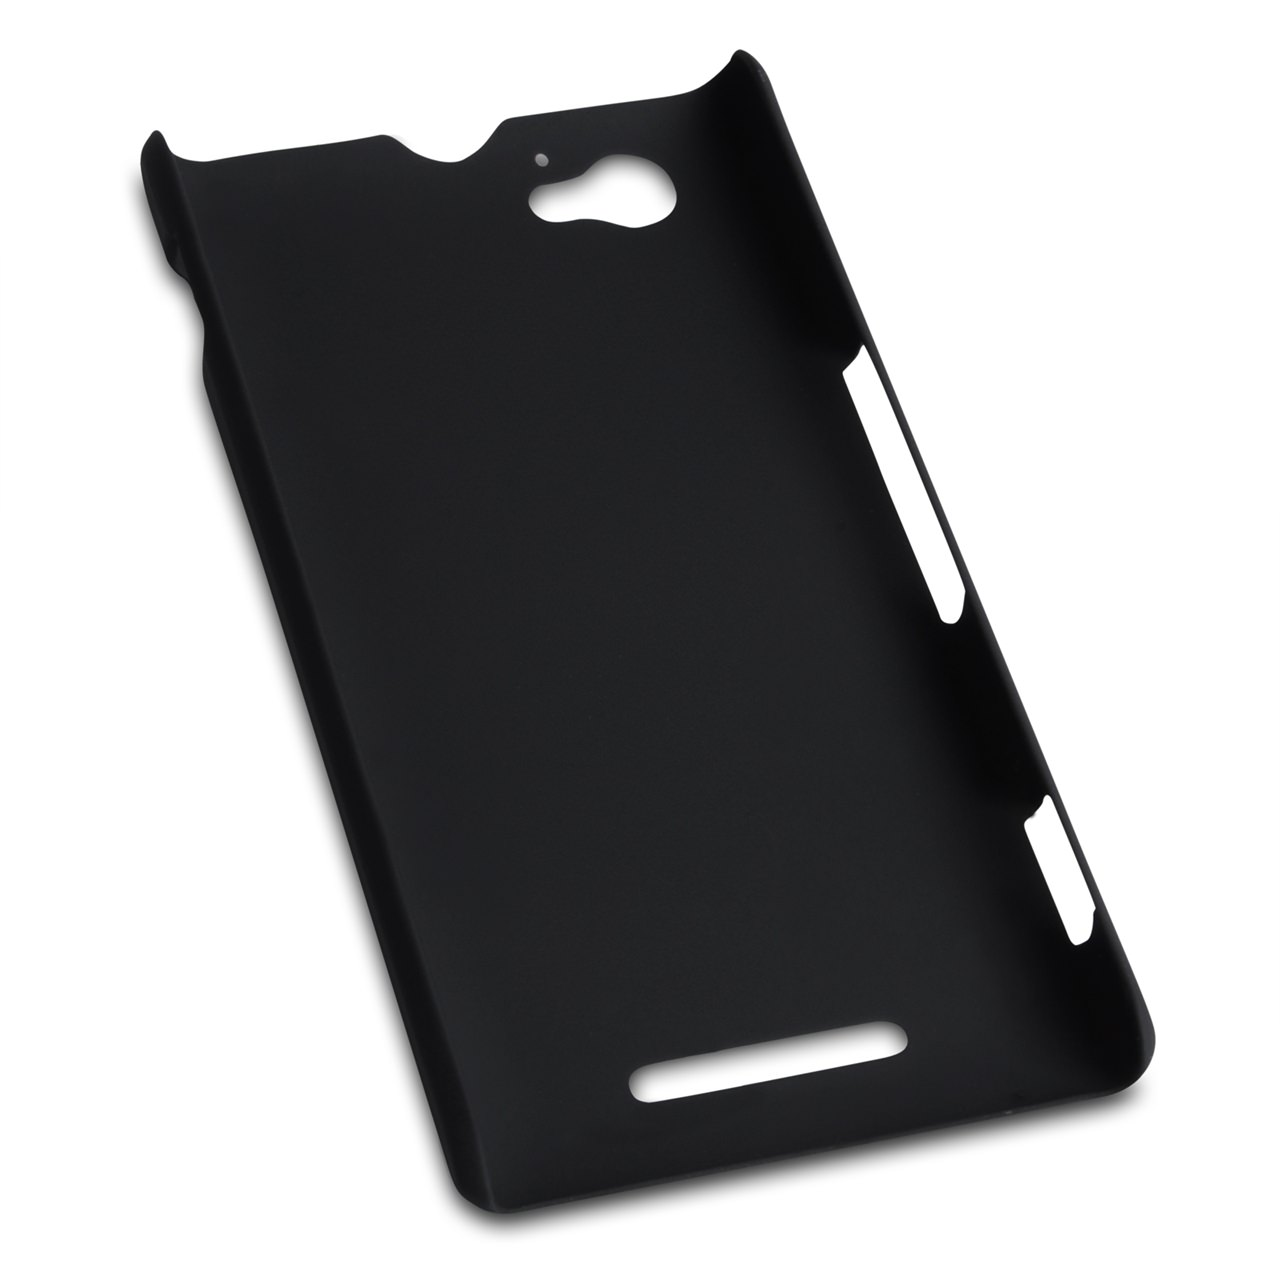 YouSave Accessories Sony Xperia M Hard Hybrid Case - Black